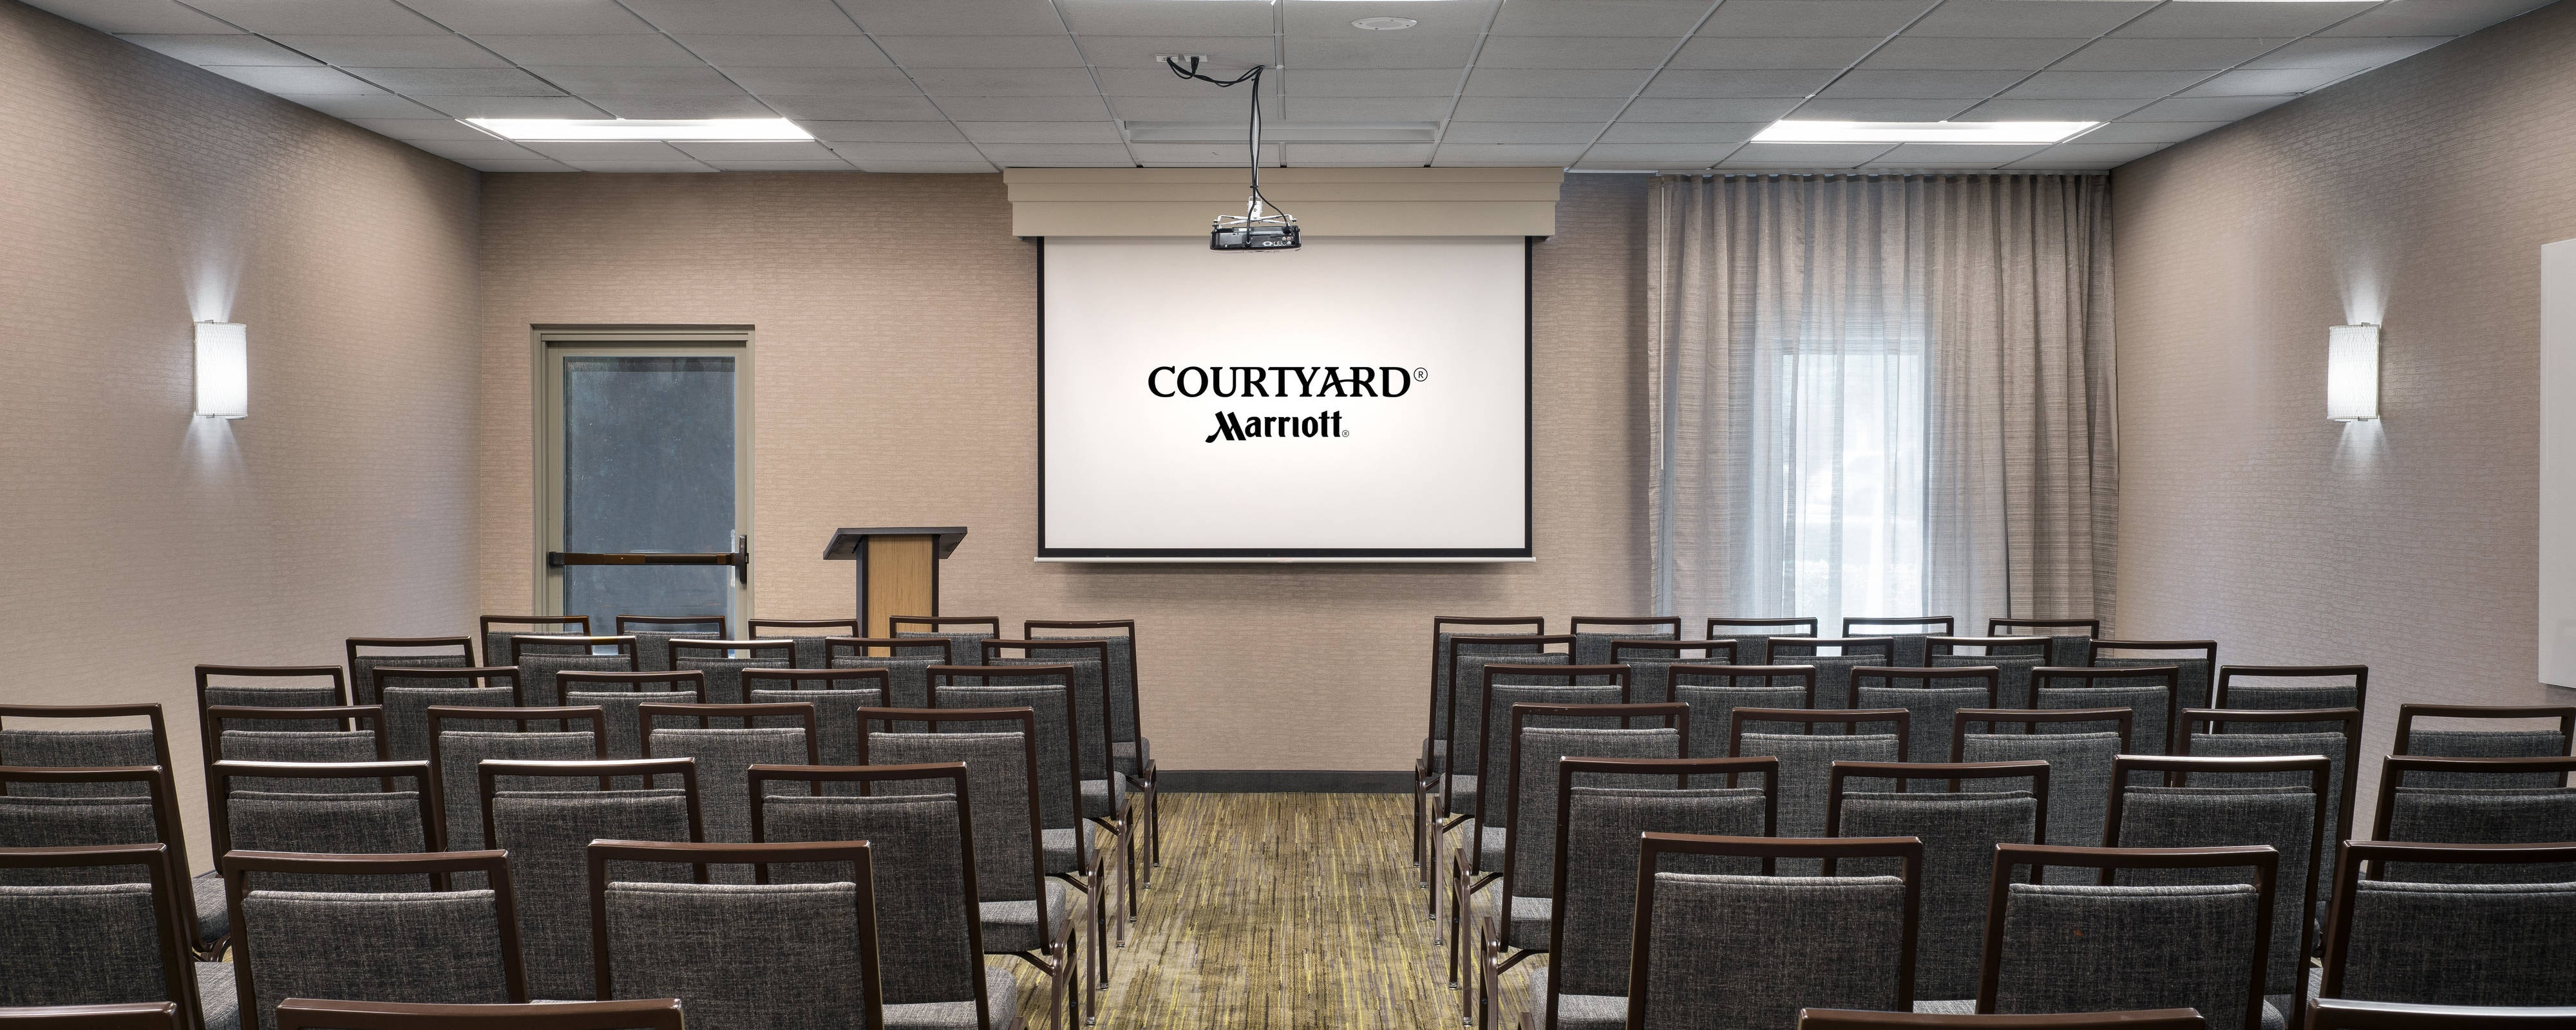 Meeting Rooms In Camarillo Ca Near Oxnard Courtyard Camarillo